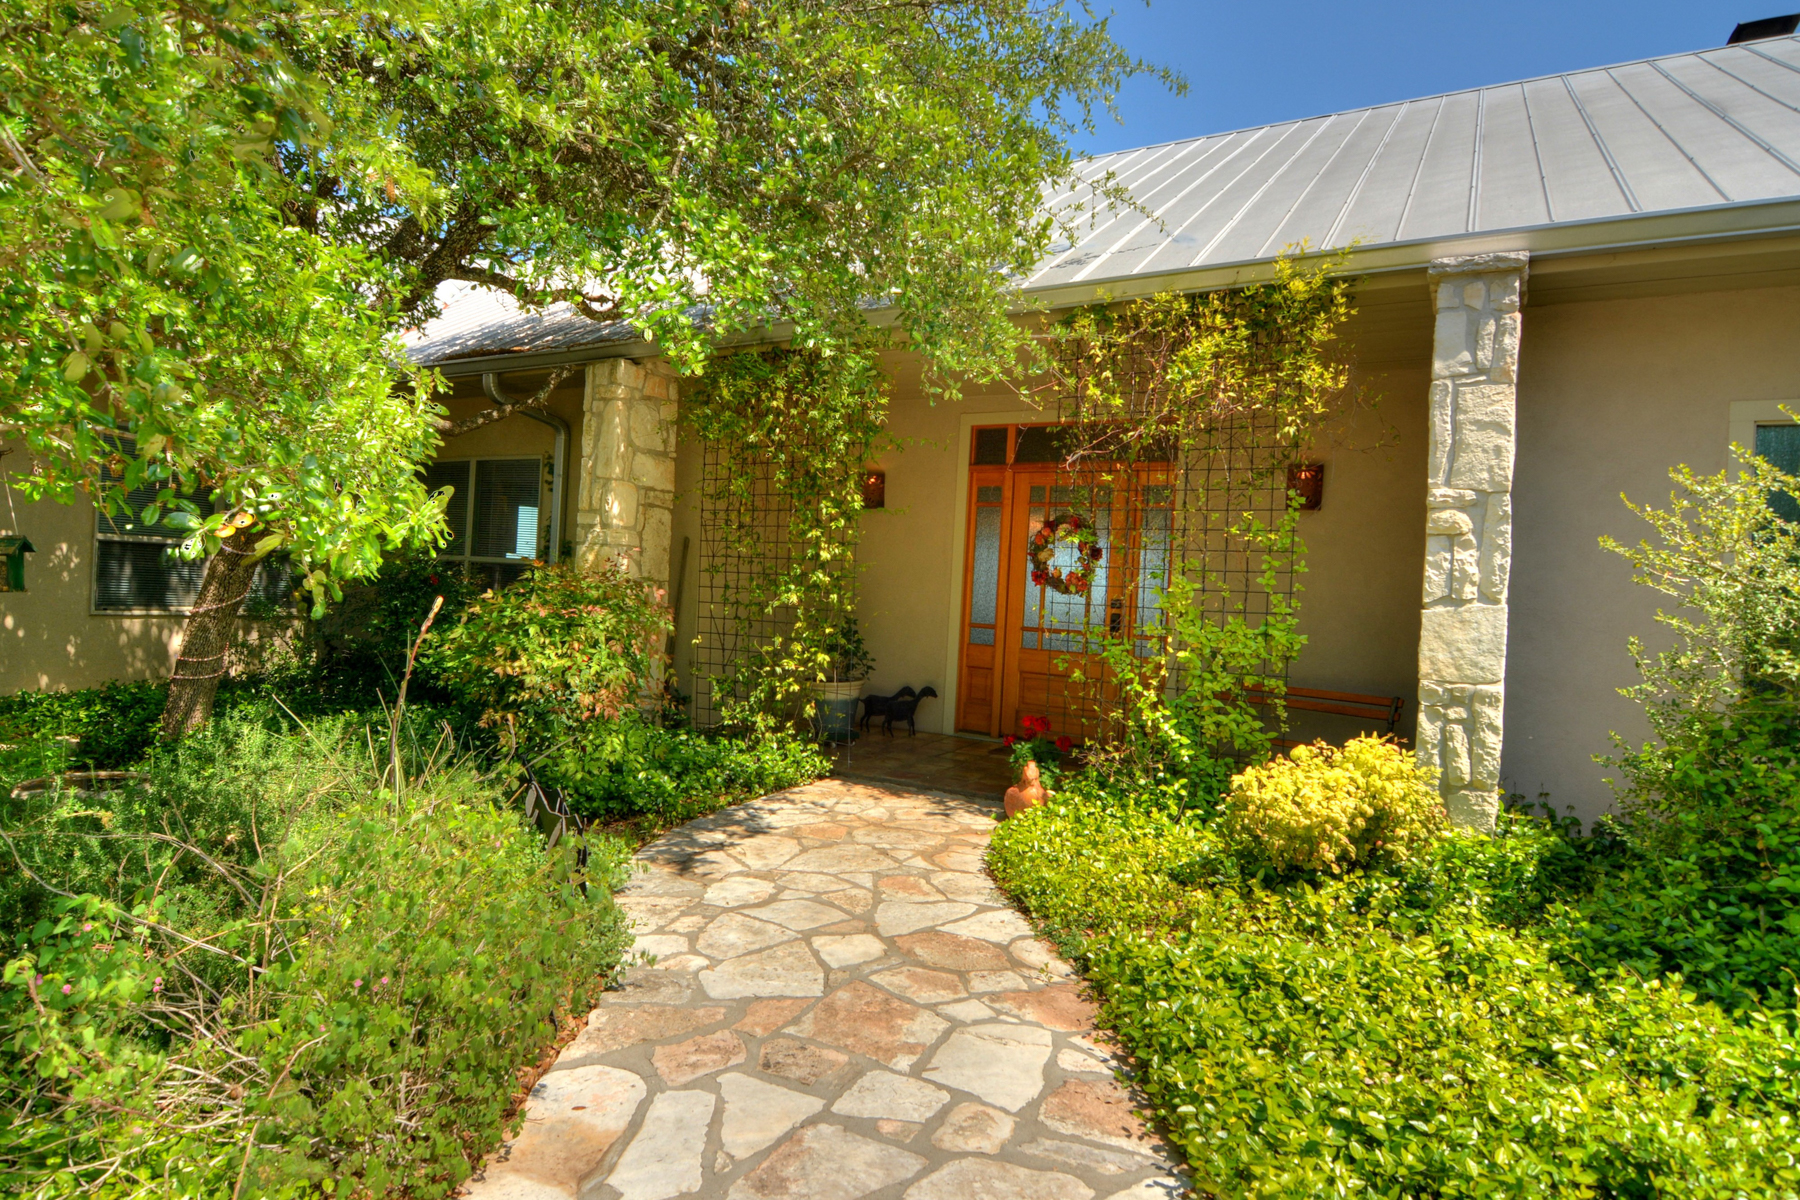 Additional photo for property listing at Upscale Hill Country Home 325 Japonica Rd Hunt, Texas 78024 Estados Unidos